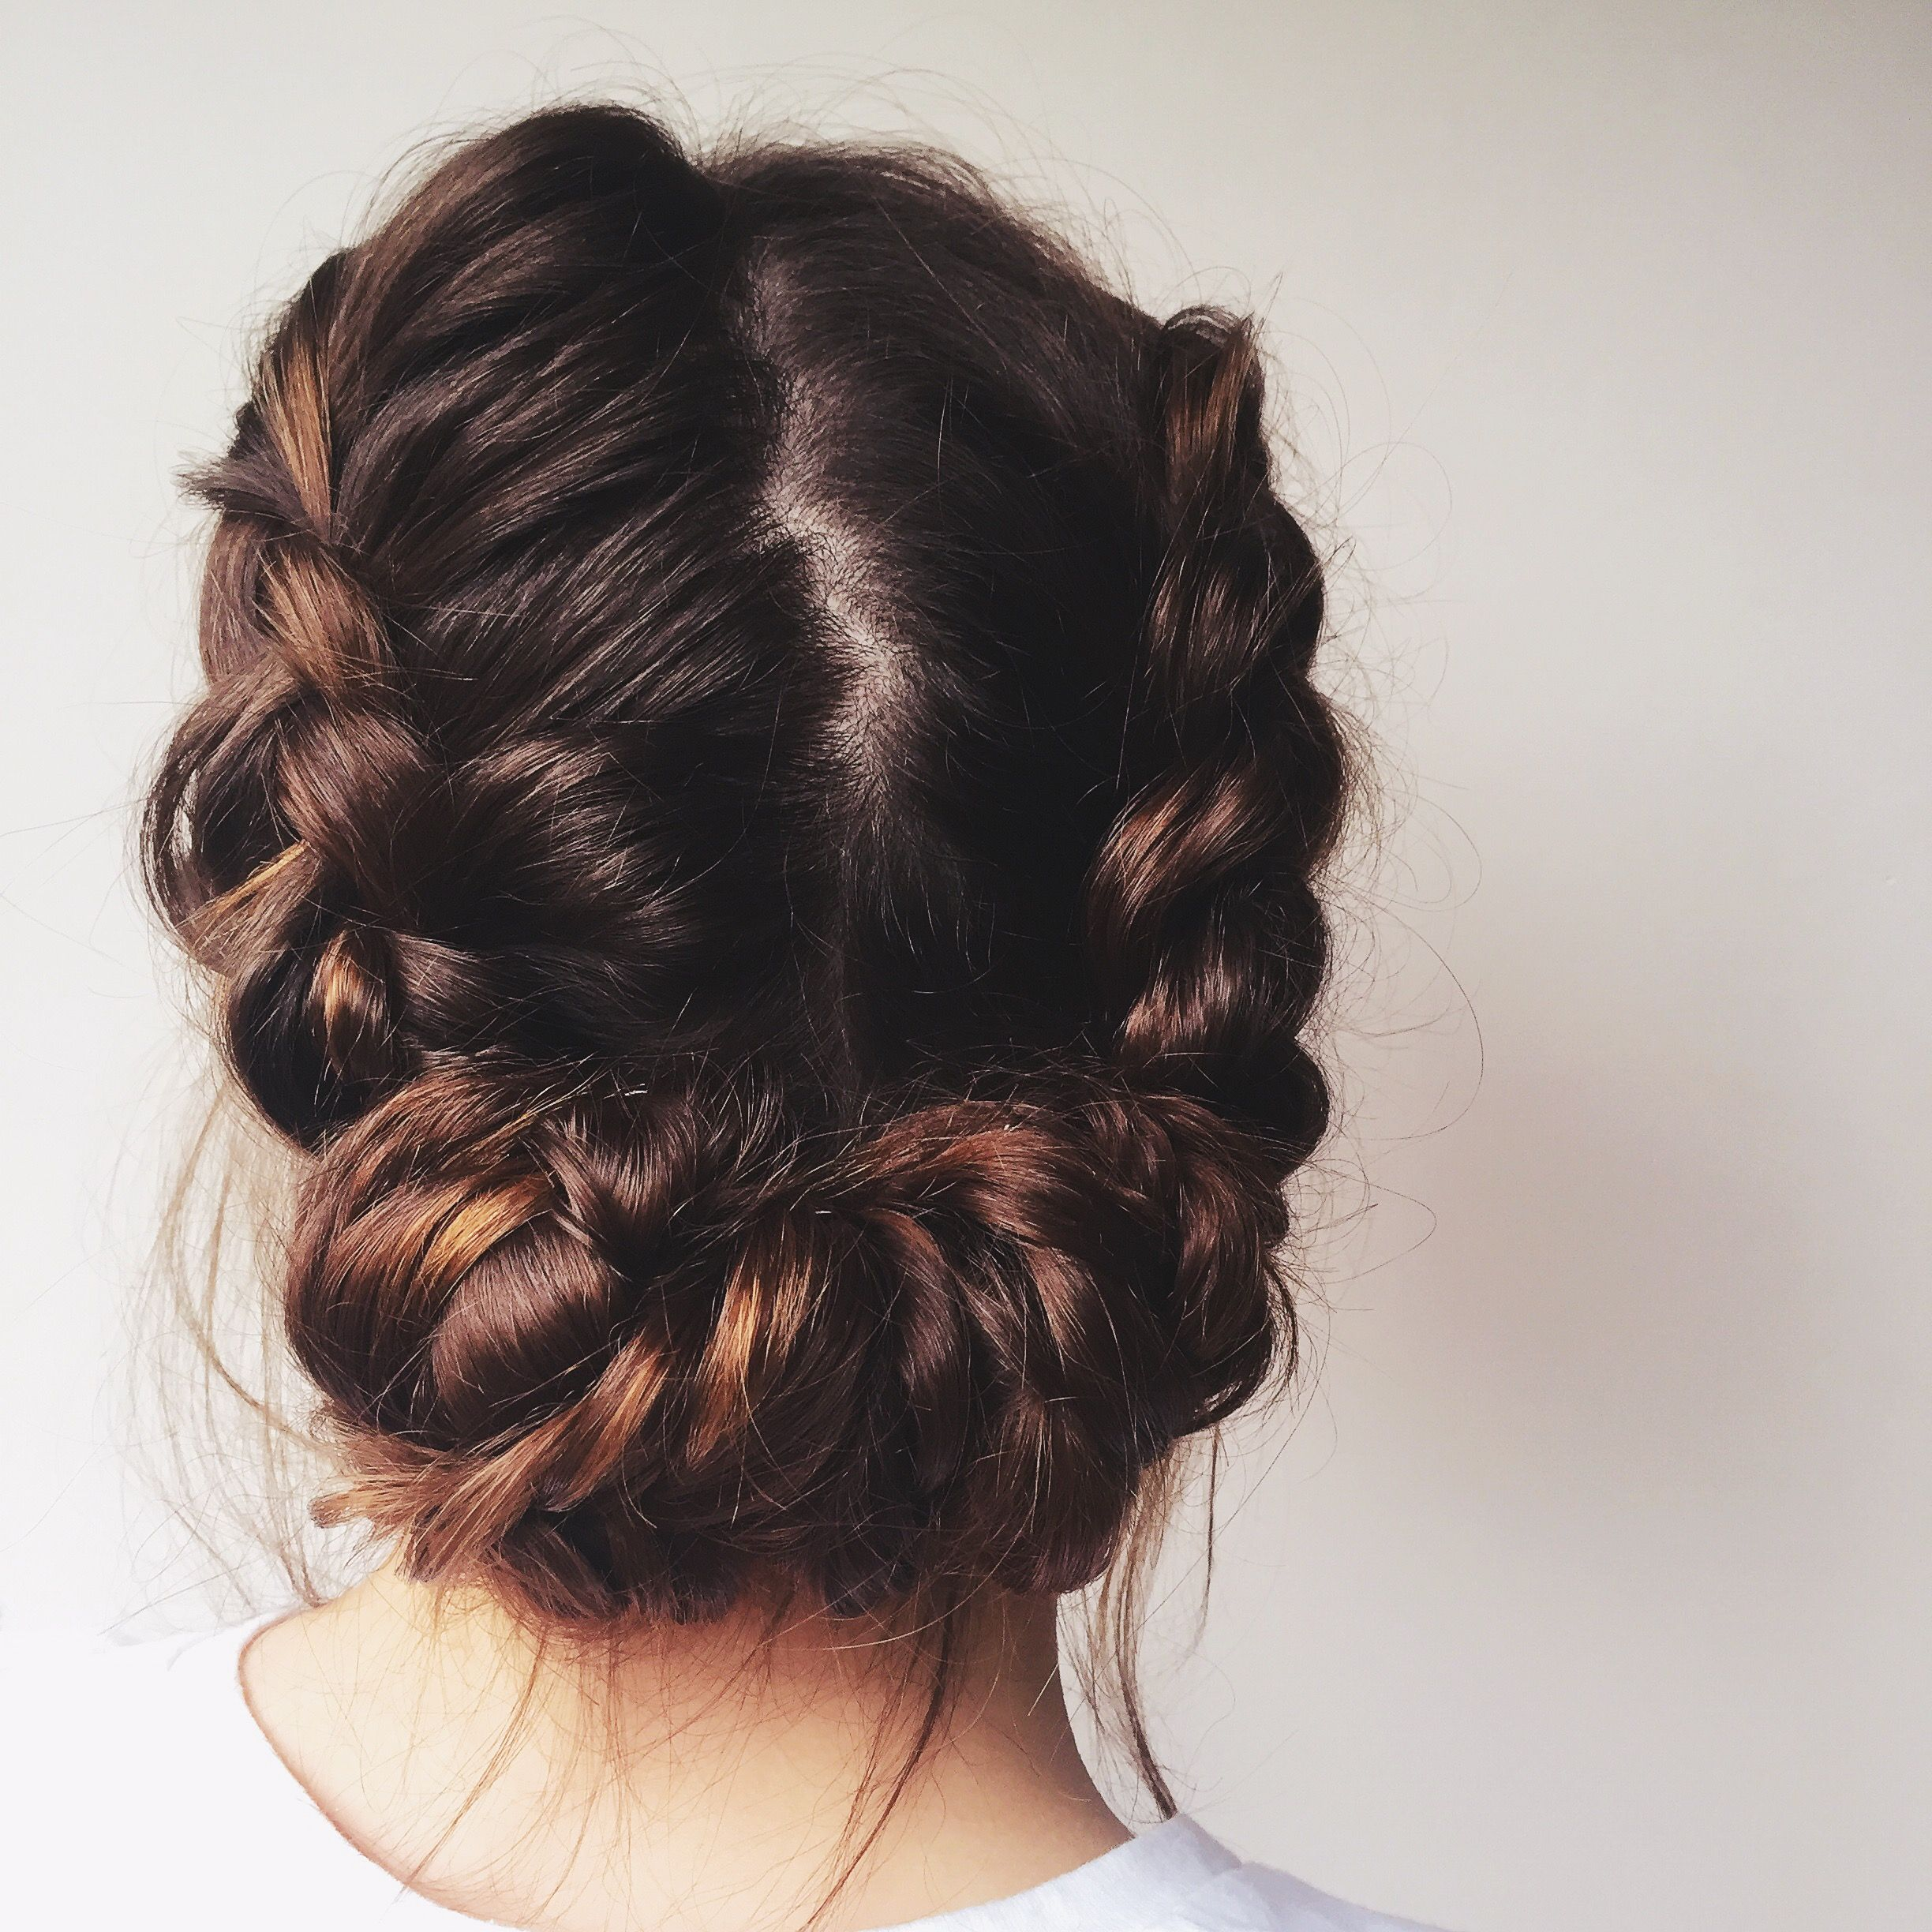 Pin by verity charlesworth on hair pinterest hair style makeup